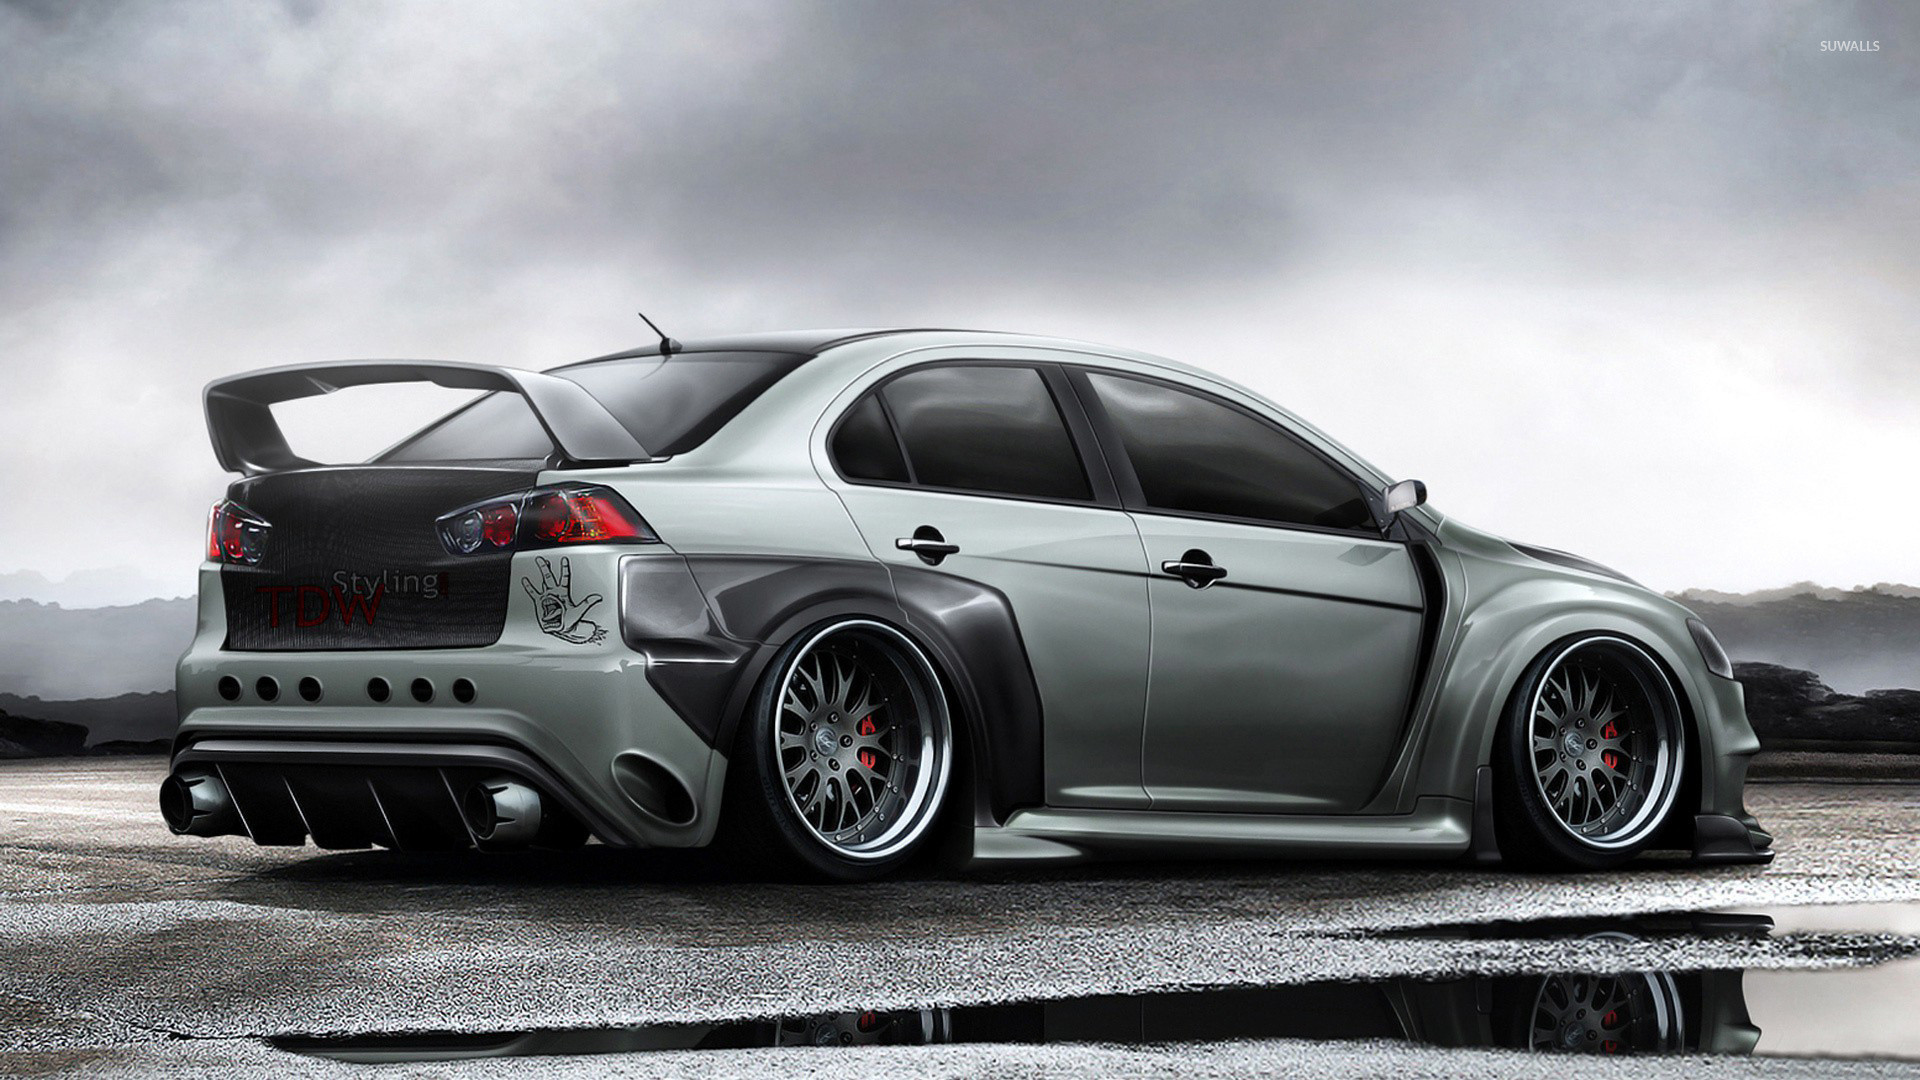 1920x1080 TDW Styling Mitsubishi Lancer Evolution X wallpaper